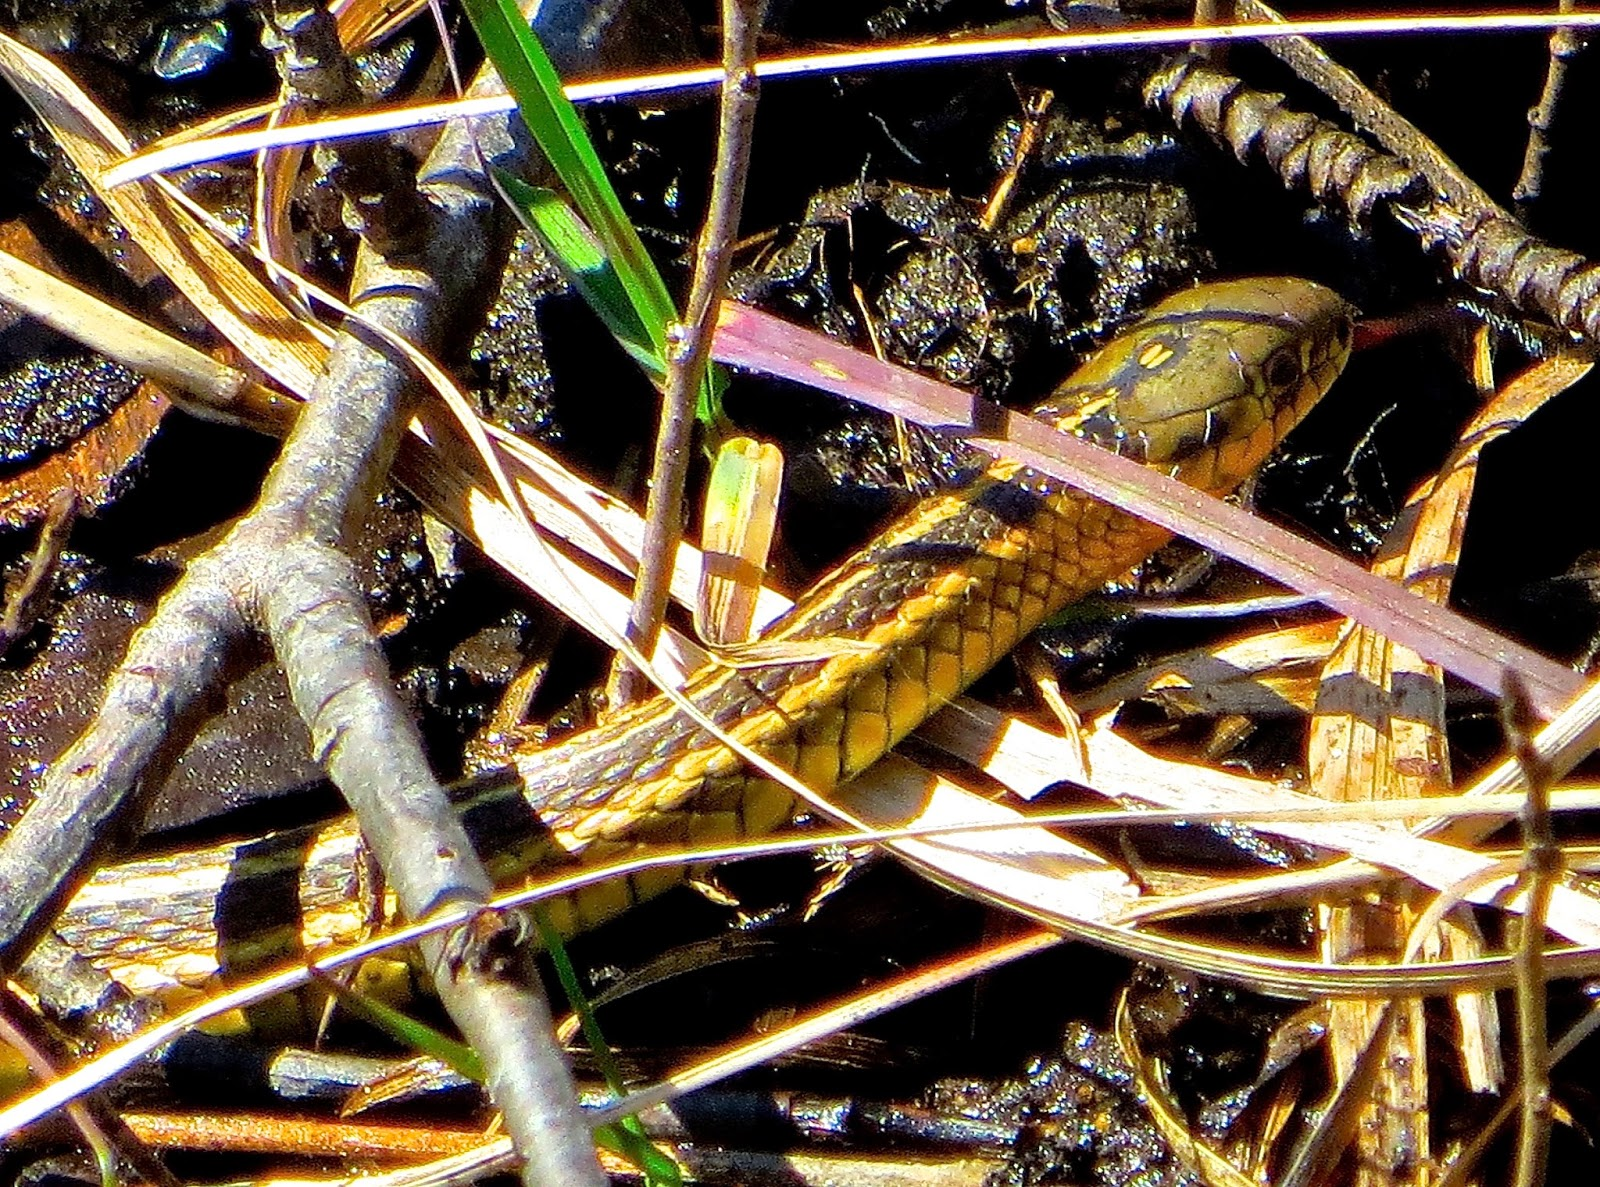 emily dickinson's the snake Snake emily dickinson album third series snake lyrics a narrow fellow in the grass occasionally rides--you may have met him--did you not his notice sudden is--the grass divides as with a.